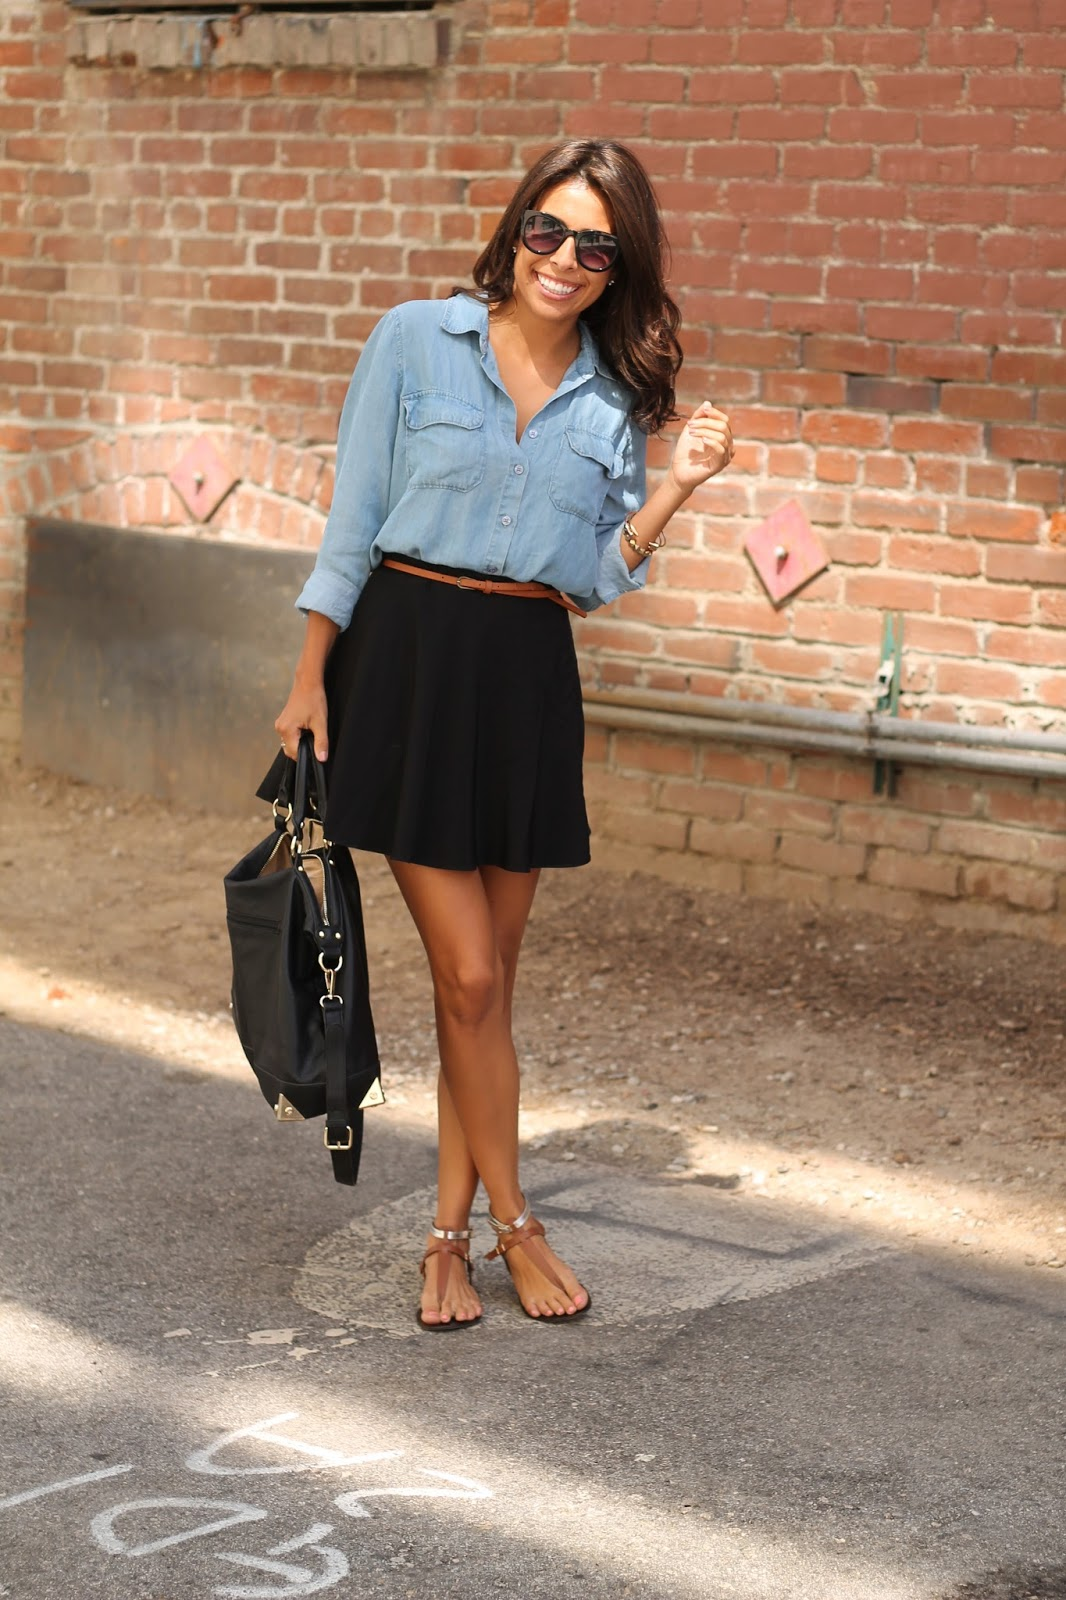 long black skirt outfits tumblr 20142015 fashion trends